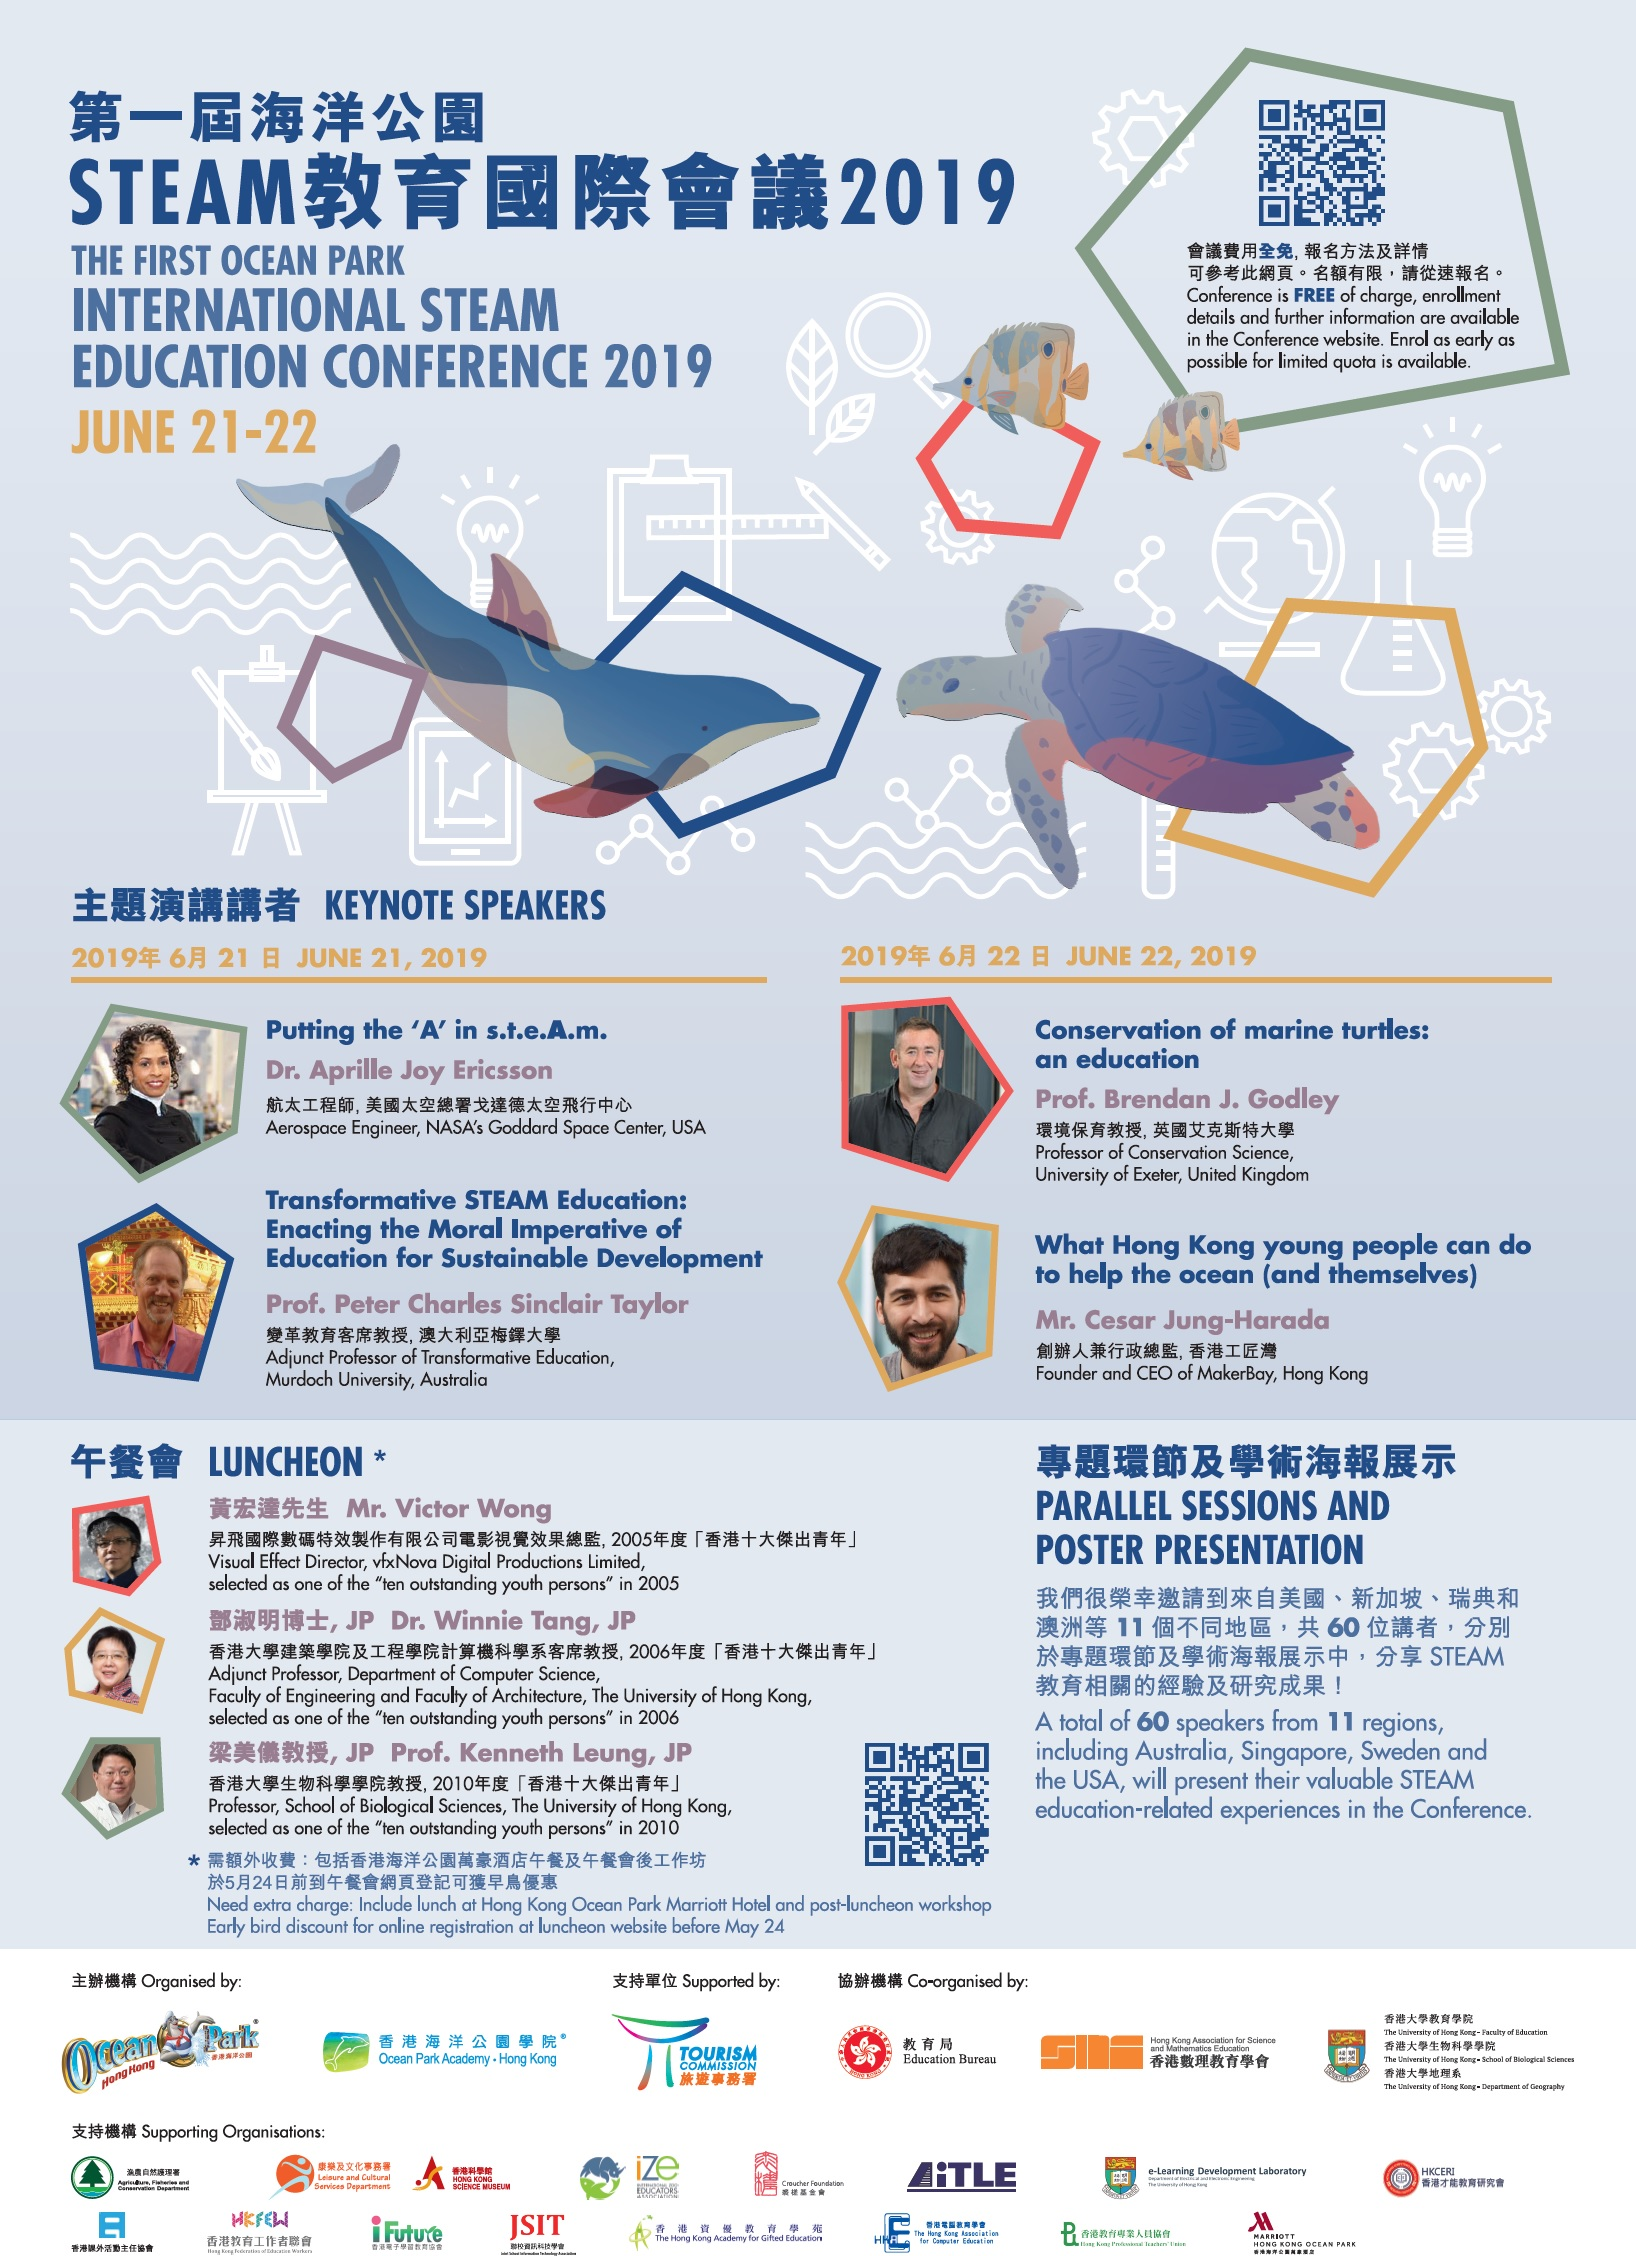 HKU - Faculty of Education - Past Events